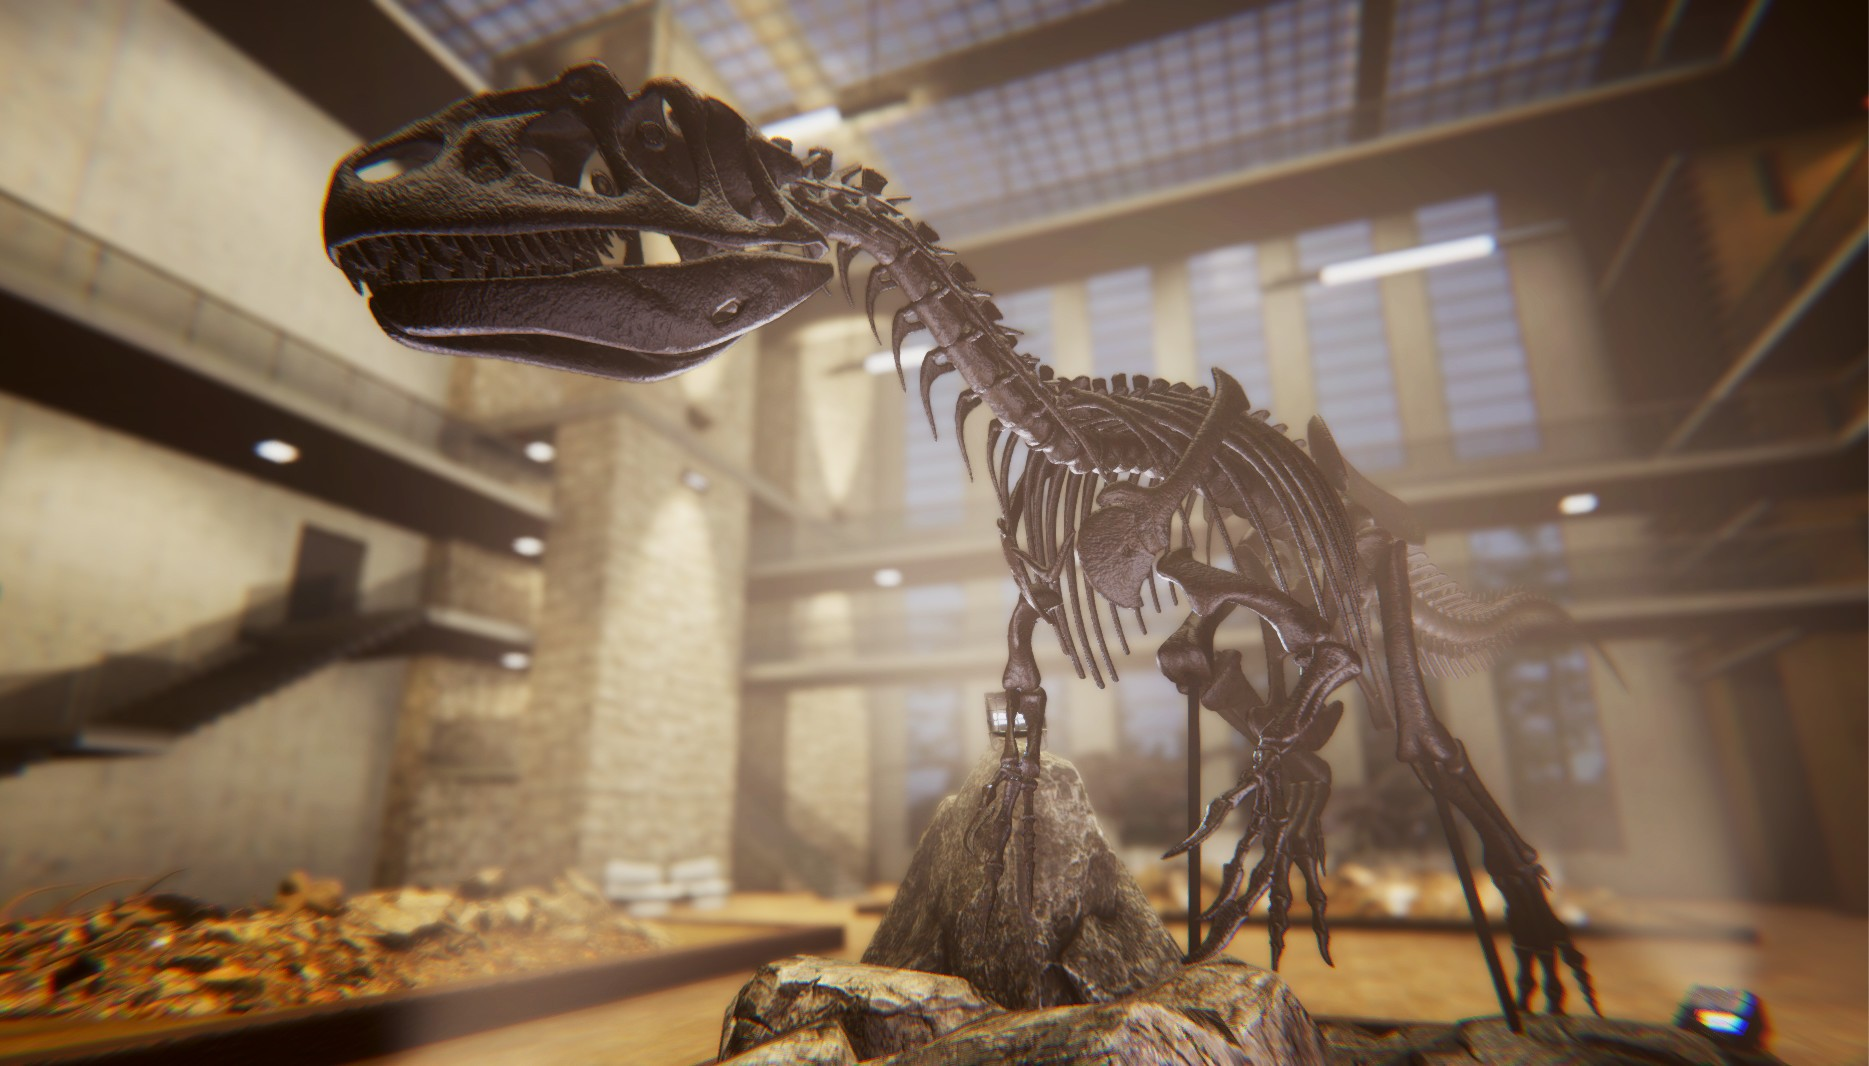 Action, adventure, Dinosaur Fossil Hunter, Dinosaur Fossil Hunter Review, Dinosaurs, exploration, indie, PC, PC Review, PlayWay S.A., Pyramid Games, Rating 5/10, simulation